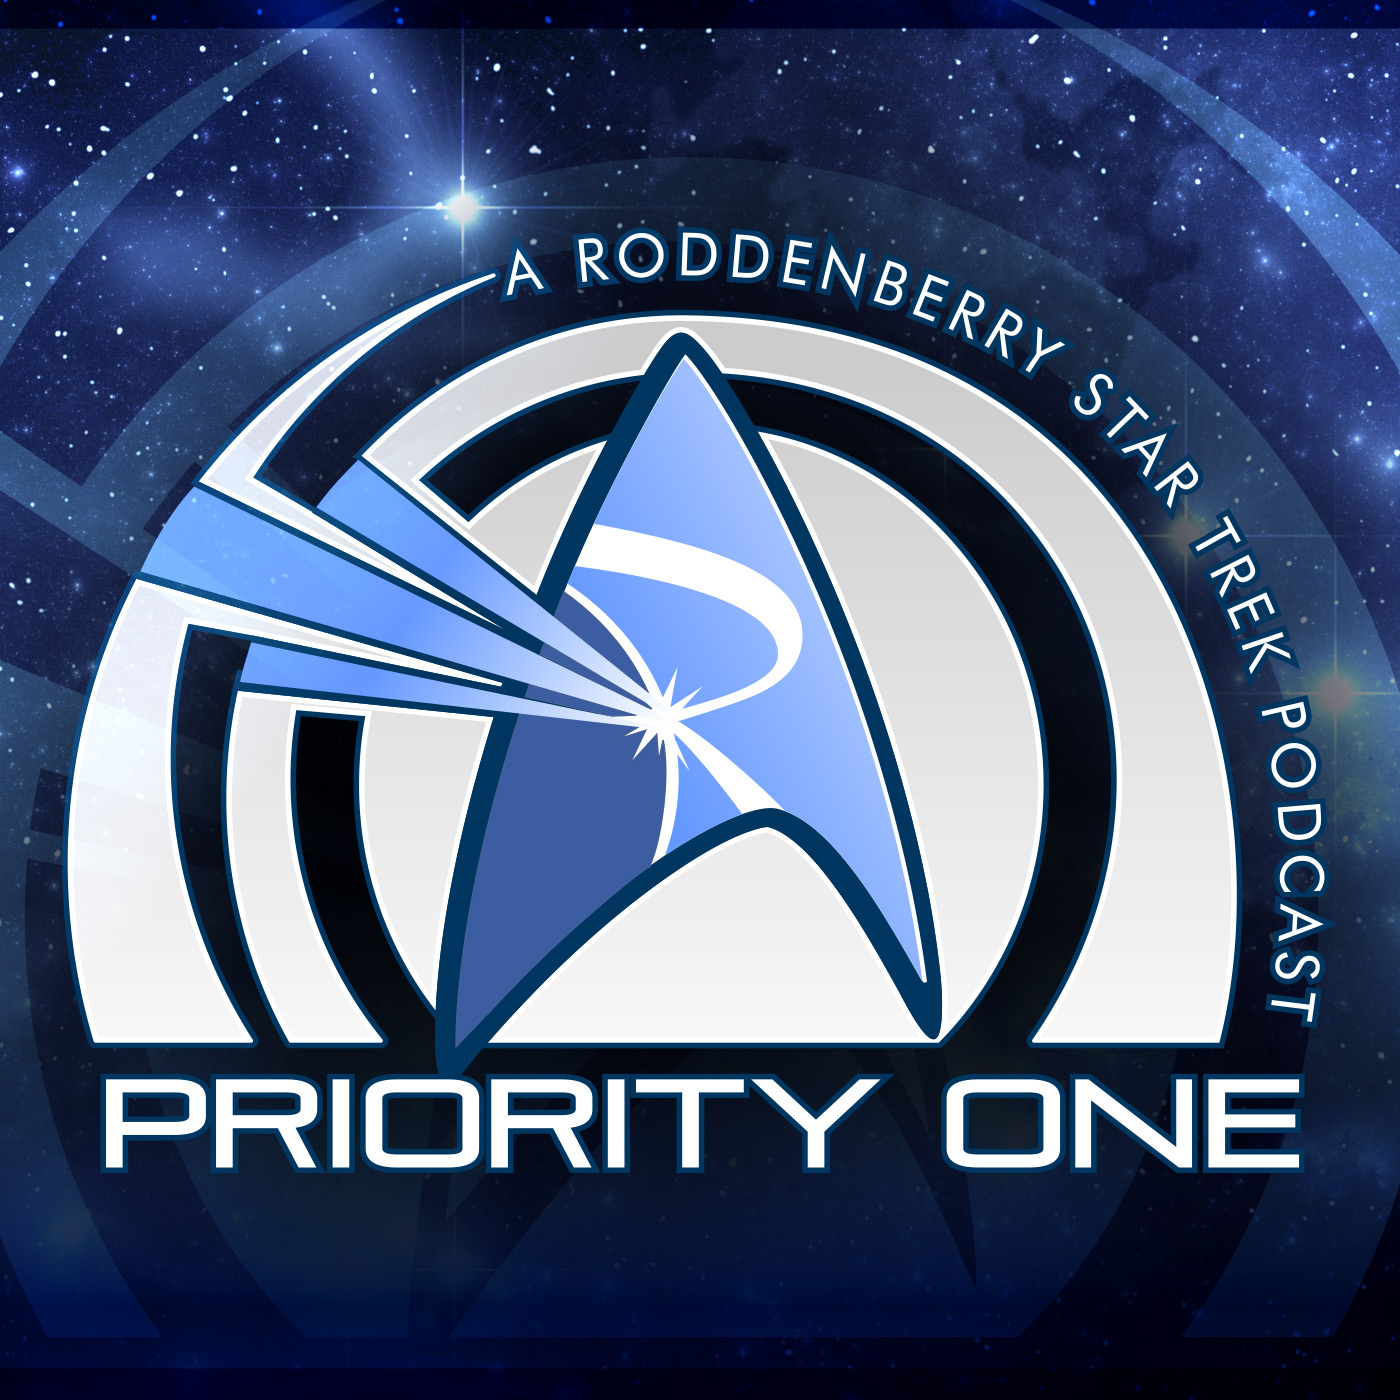 Artwork for 402 - Our Third 400th | Priority One: A Roddenberry Star Trek Podcast